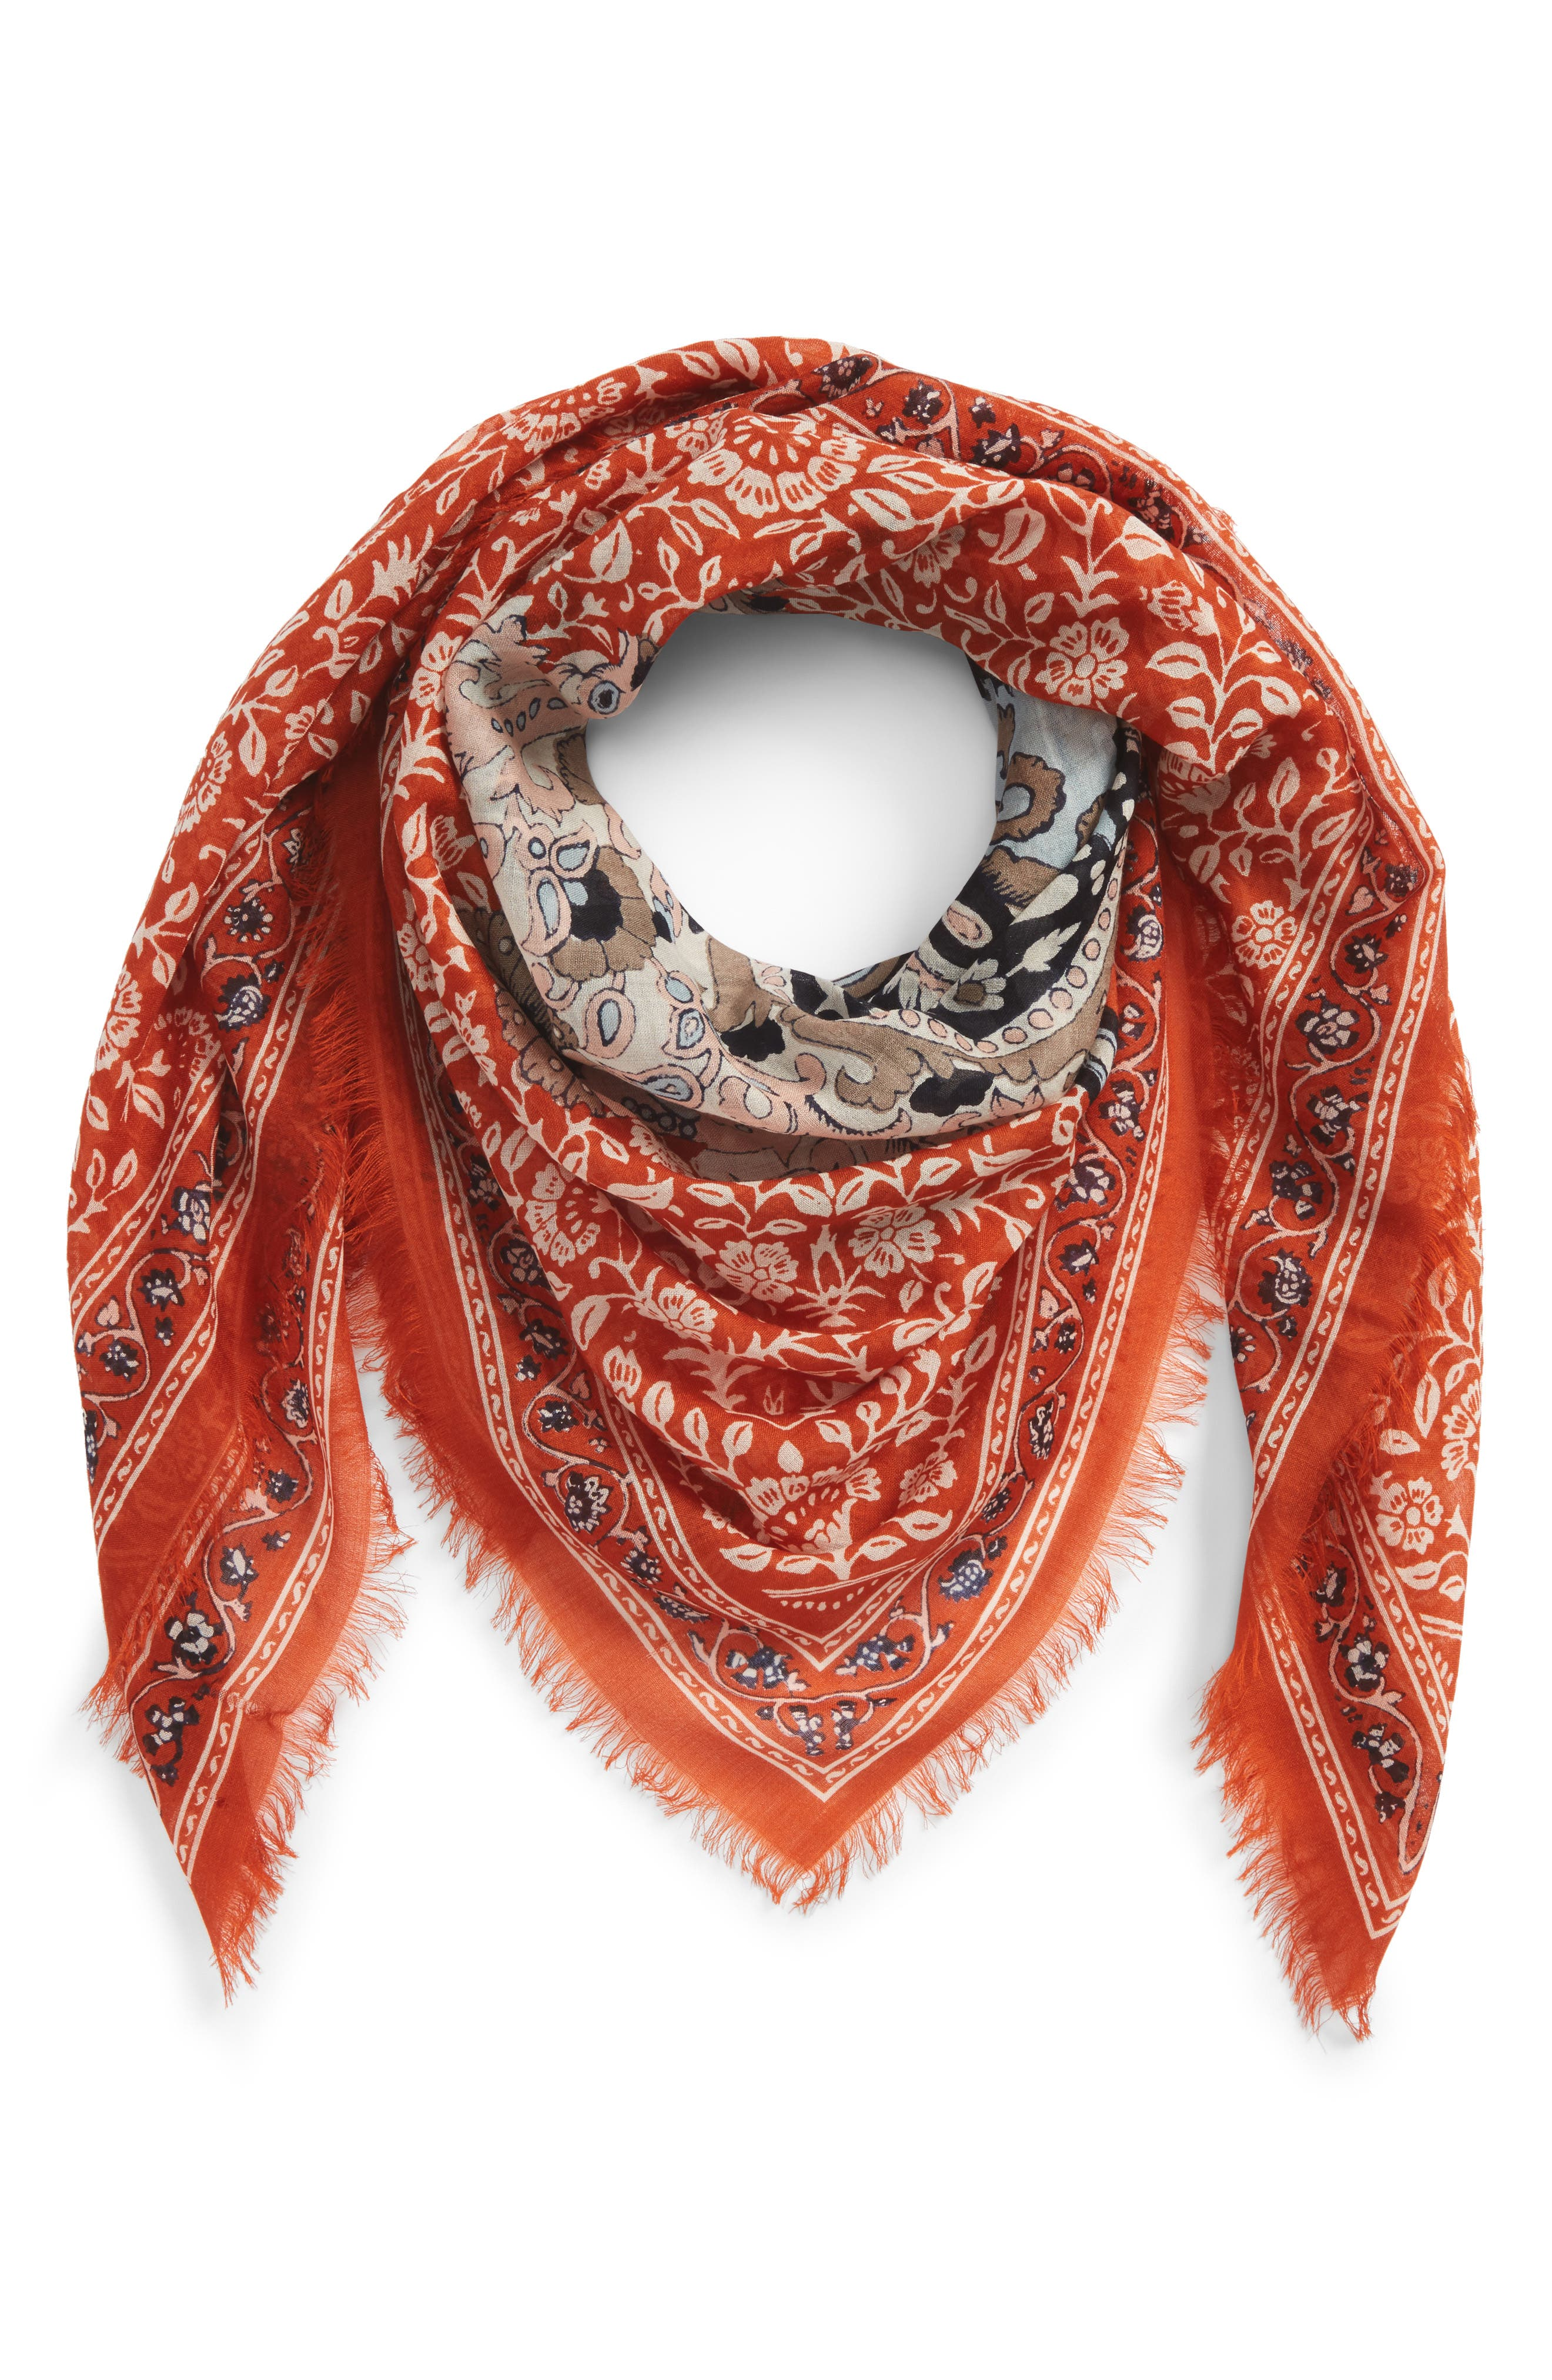 MADEWELL, Greta Paisley Square Scarf, Alternate thumbnail 2, color, RUSTY TORCH MULTI